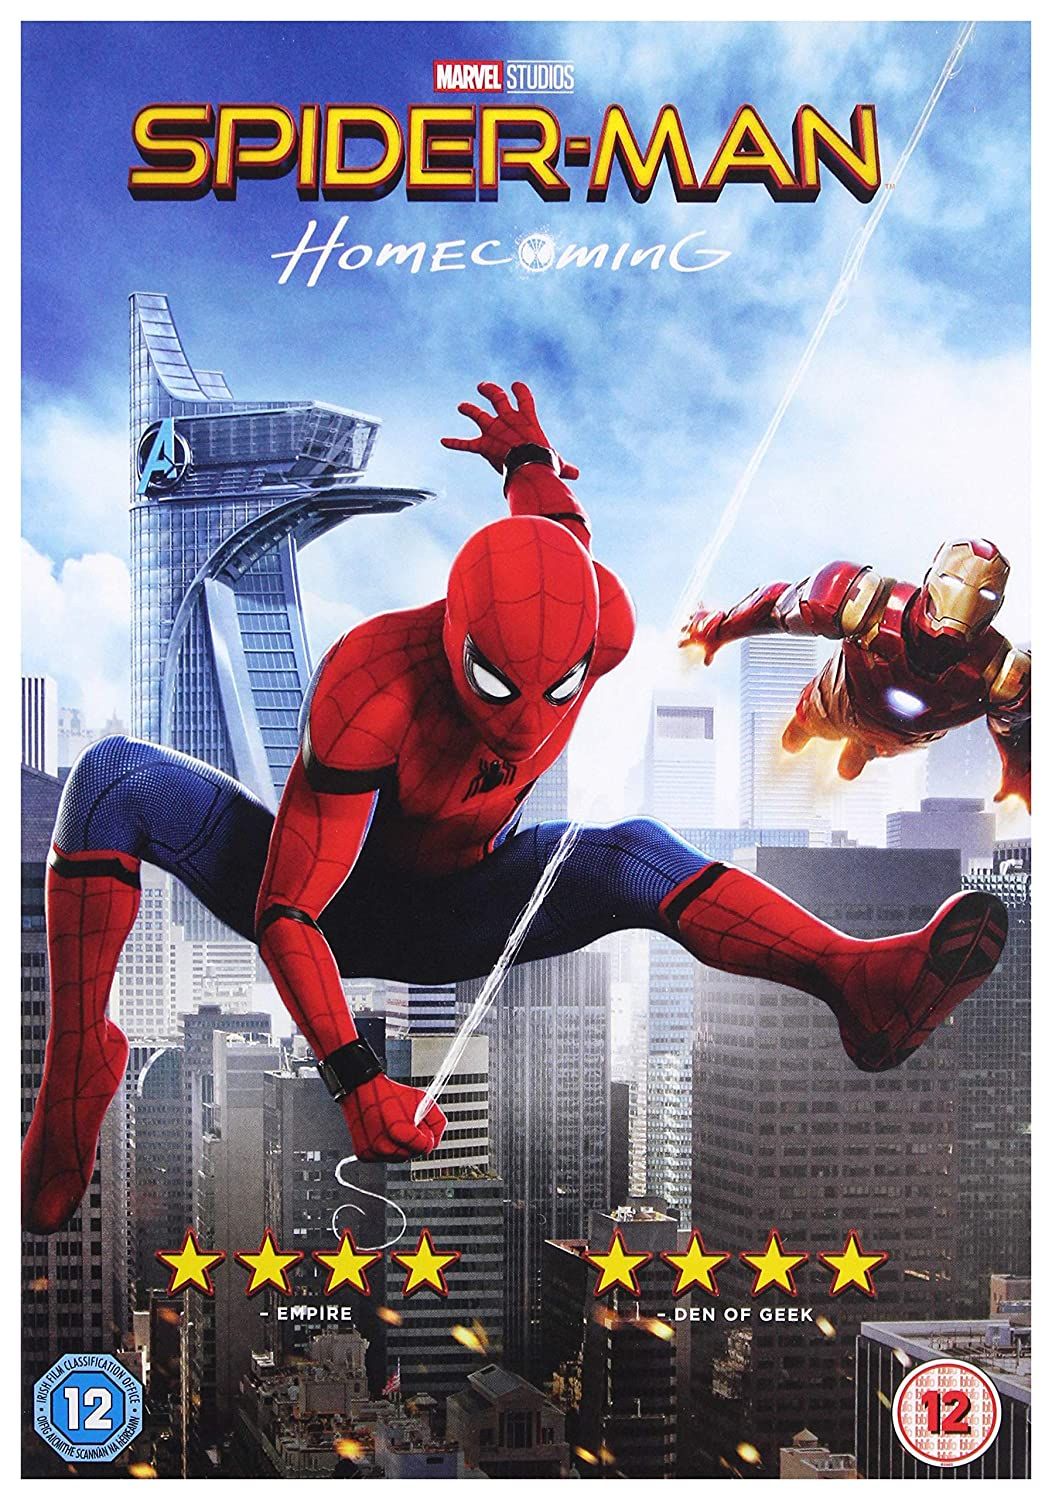 Amazon Com Spider Man Homecoming Dvd 2017 Usa Non Compatible Product Region 2 Movies Tv